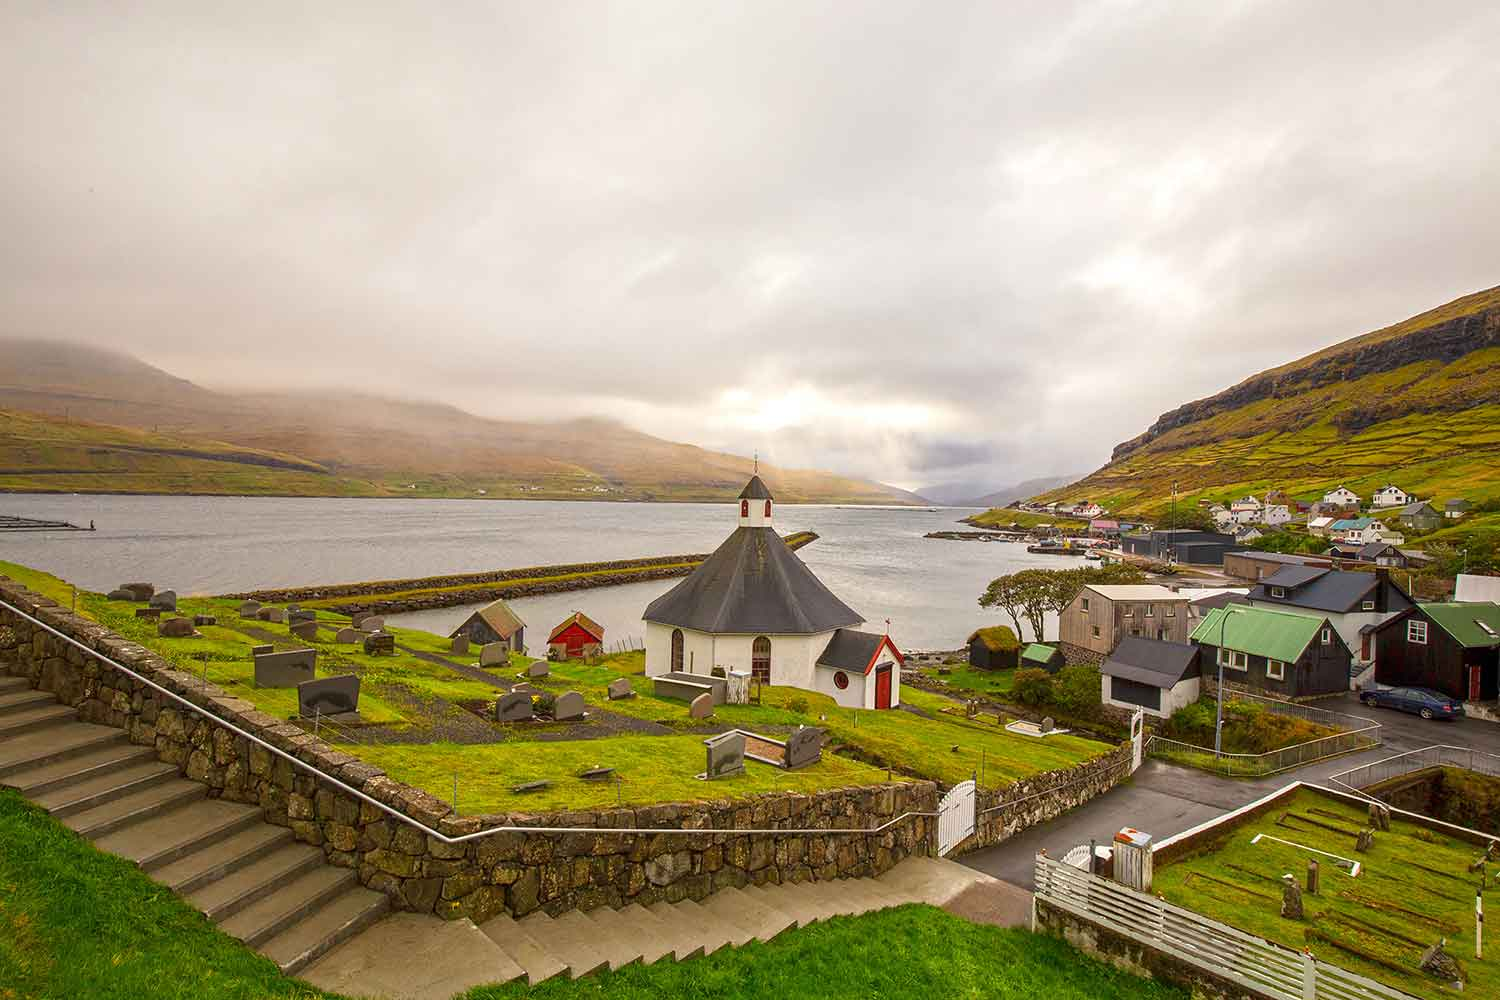 Haldórsvík, population 150, located on the northeast side of Streymoy island. This stone church was built in 1856 and is the only octagon church in all the Faroes. The light comes and goes in the Faroes so quickly.